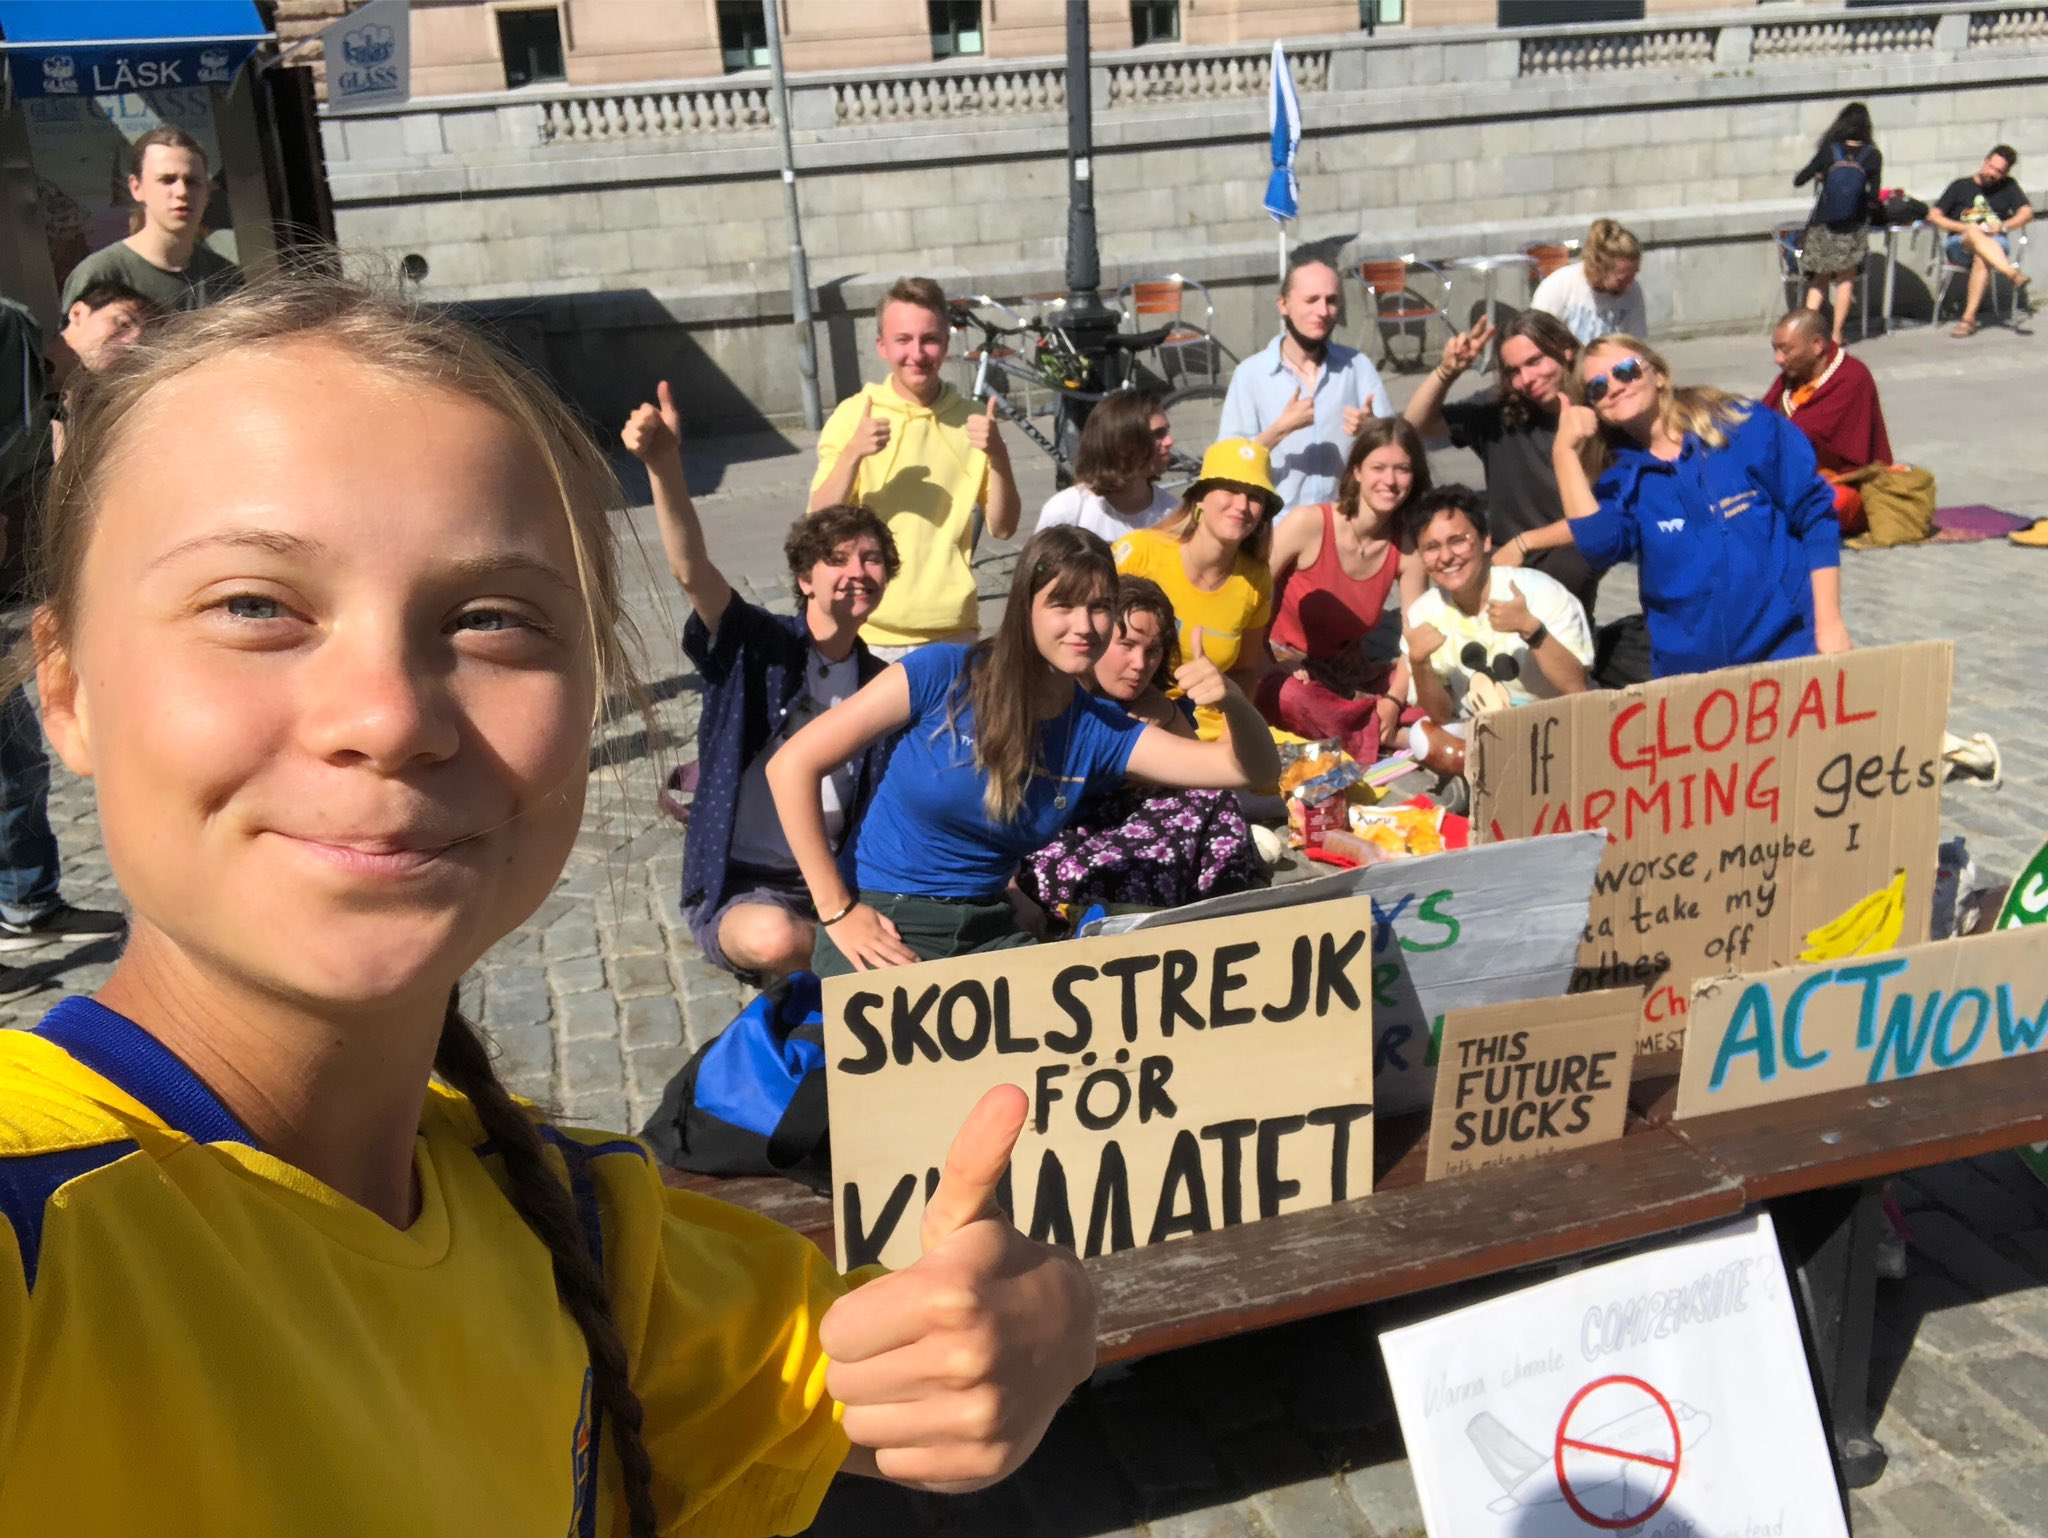 Greta Thunberg starred for Vogue and criticized the fashion world for climate change